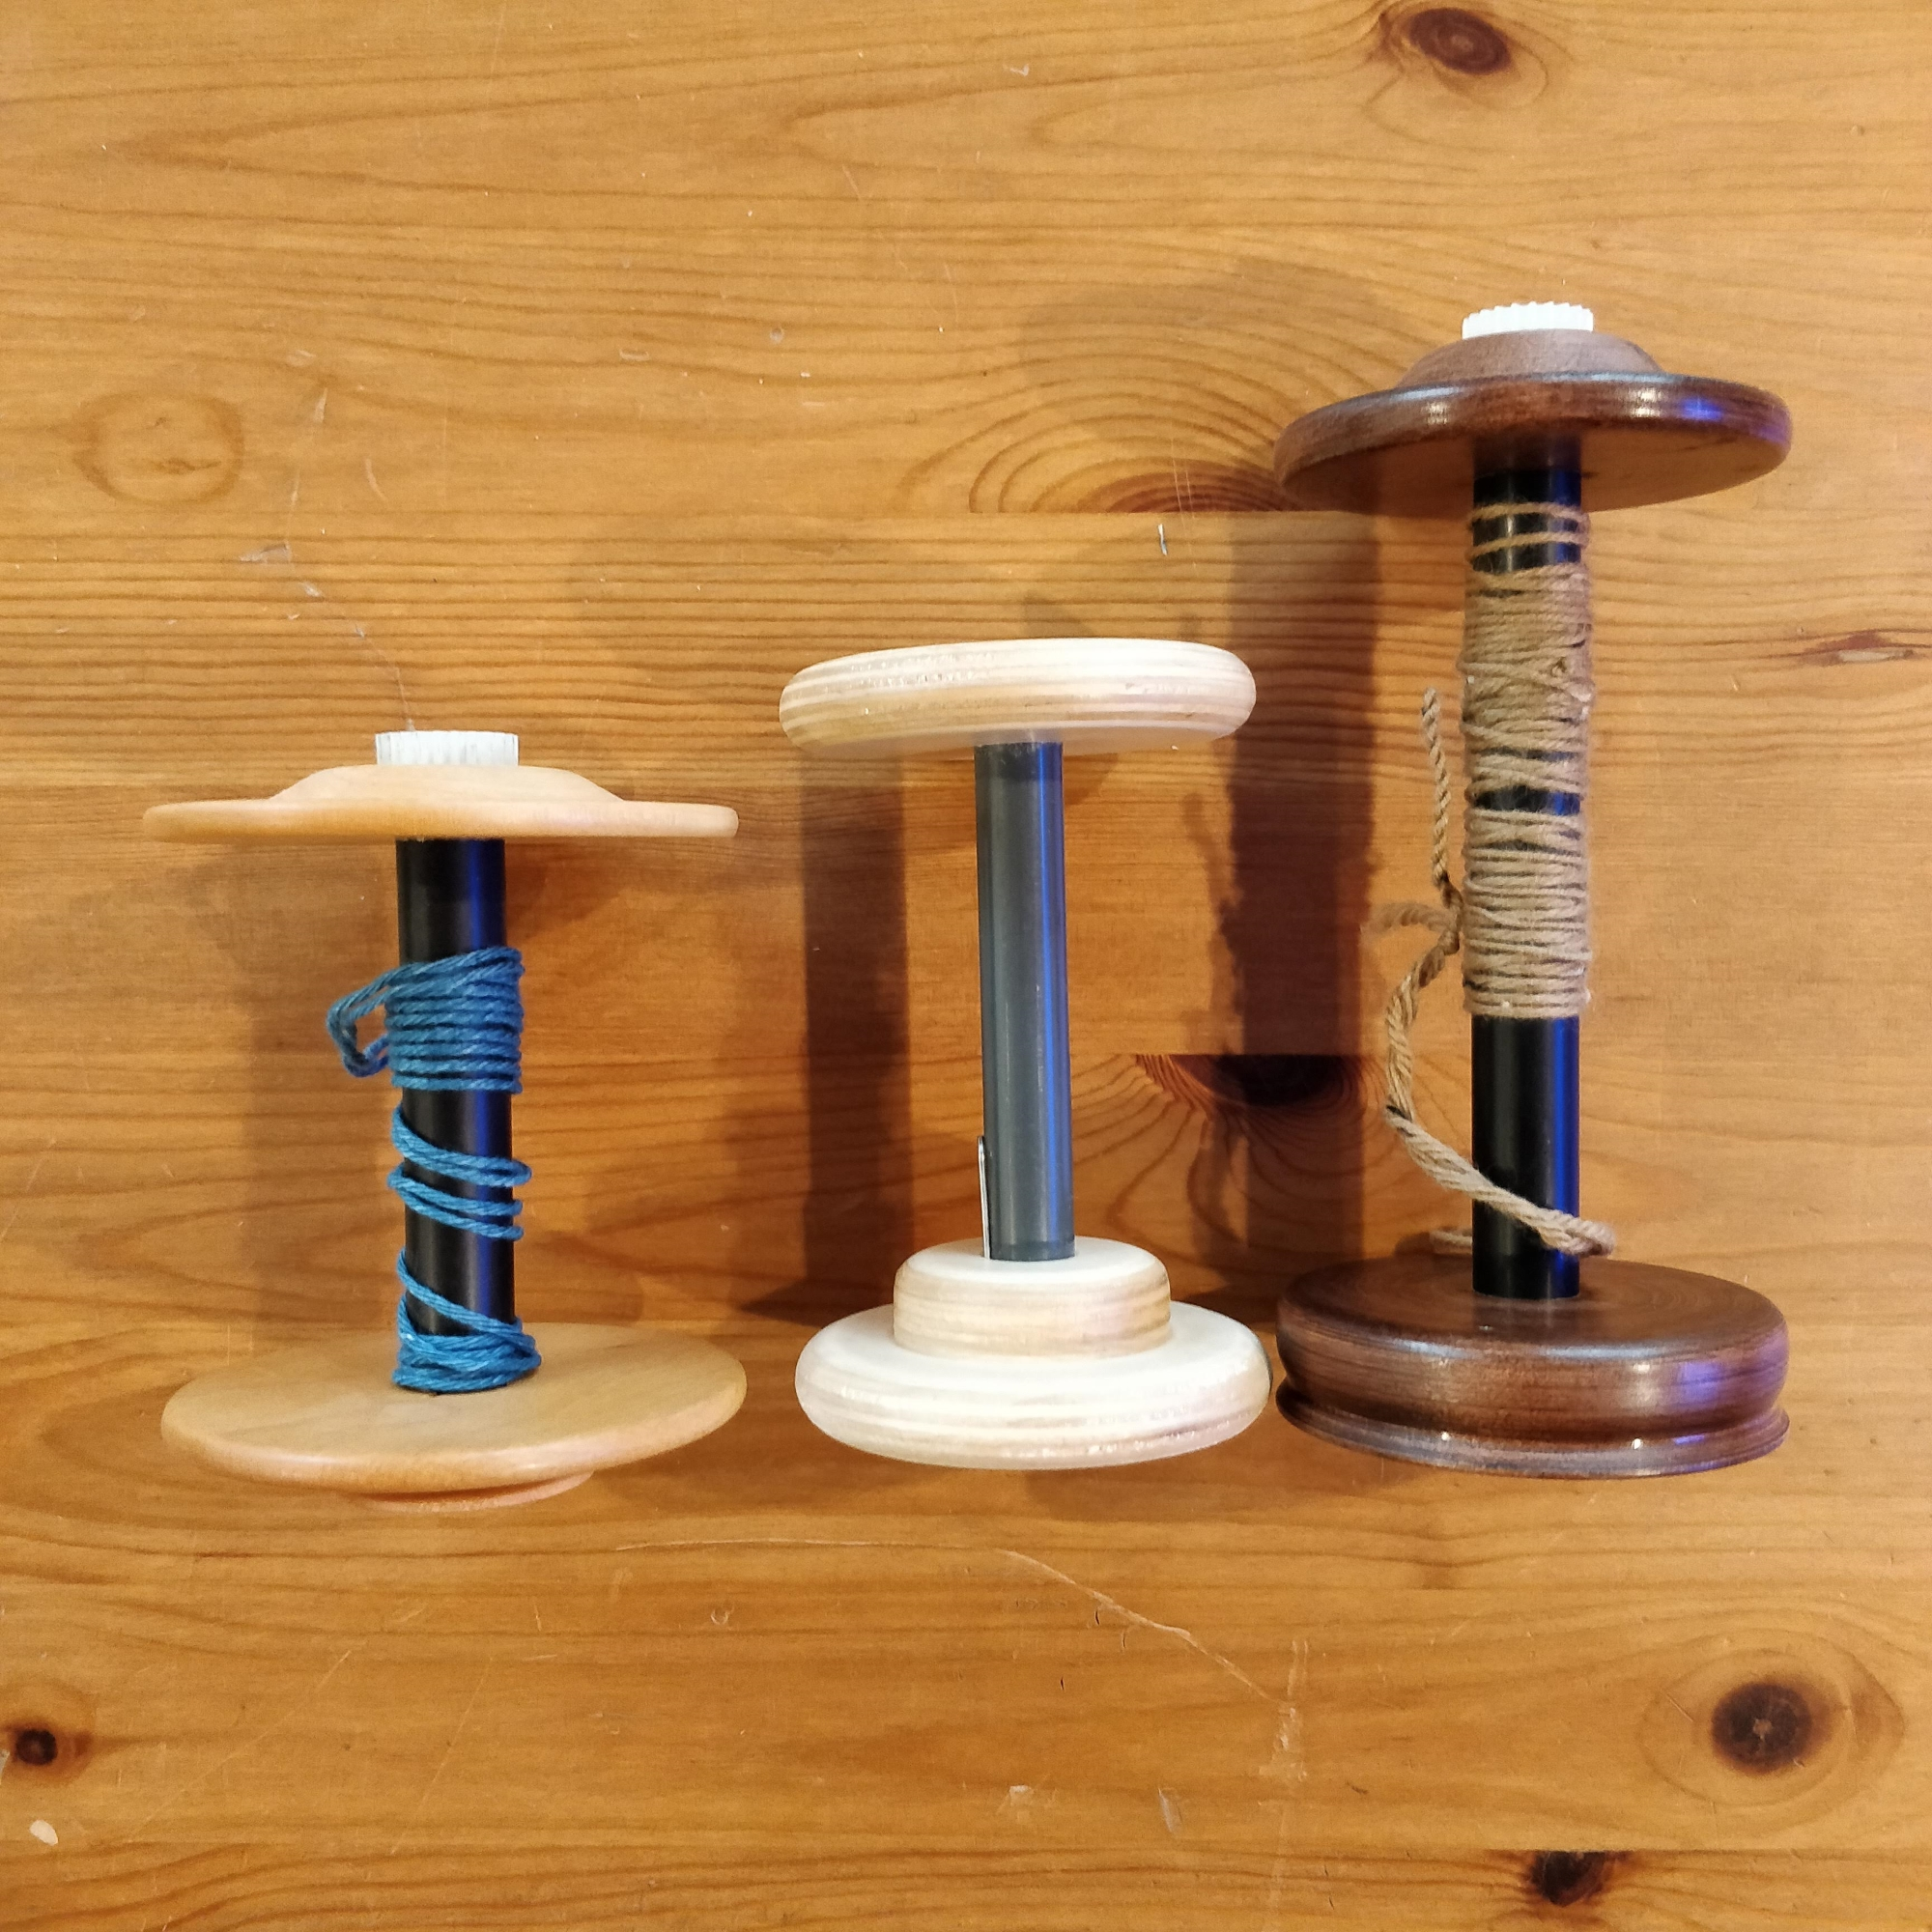 Three bobbins, compared in length. The Schacht-Reeves bobbin on the left is the shortest; the Spinolution bobbin in the center is a little bit longer; the Kromski bobbin on the right is significantly longer.